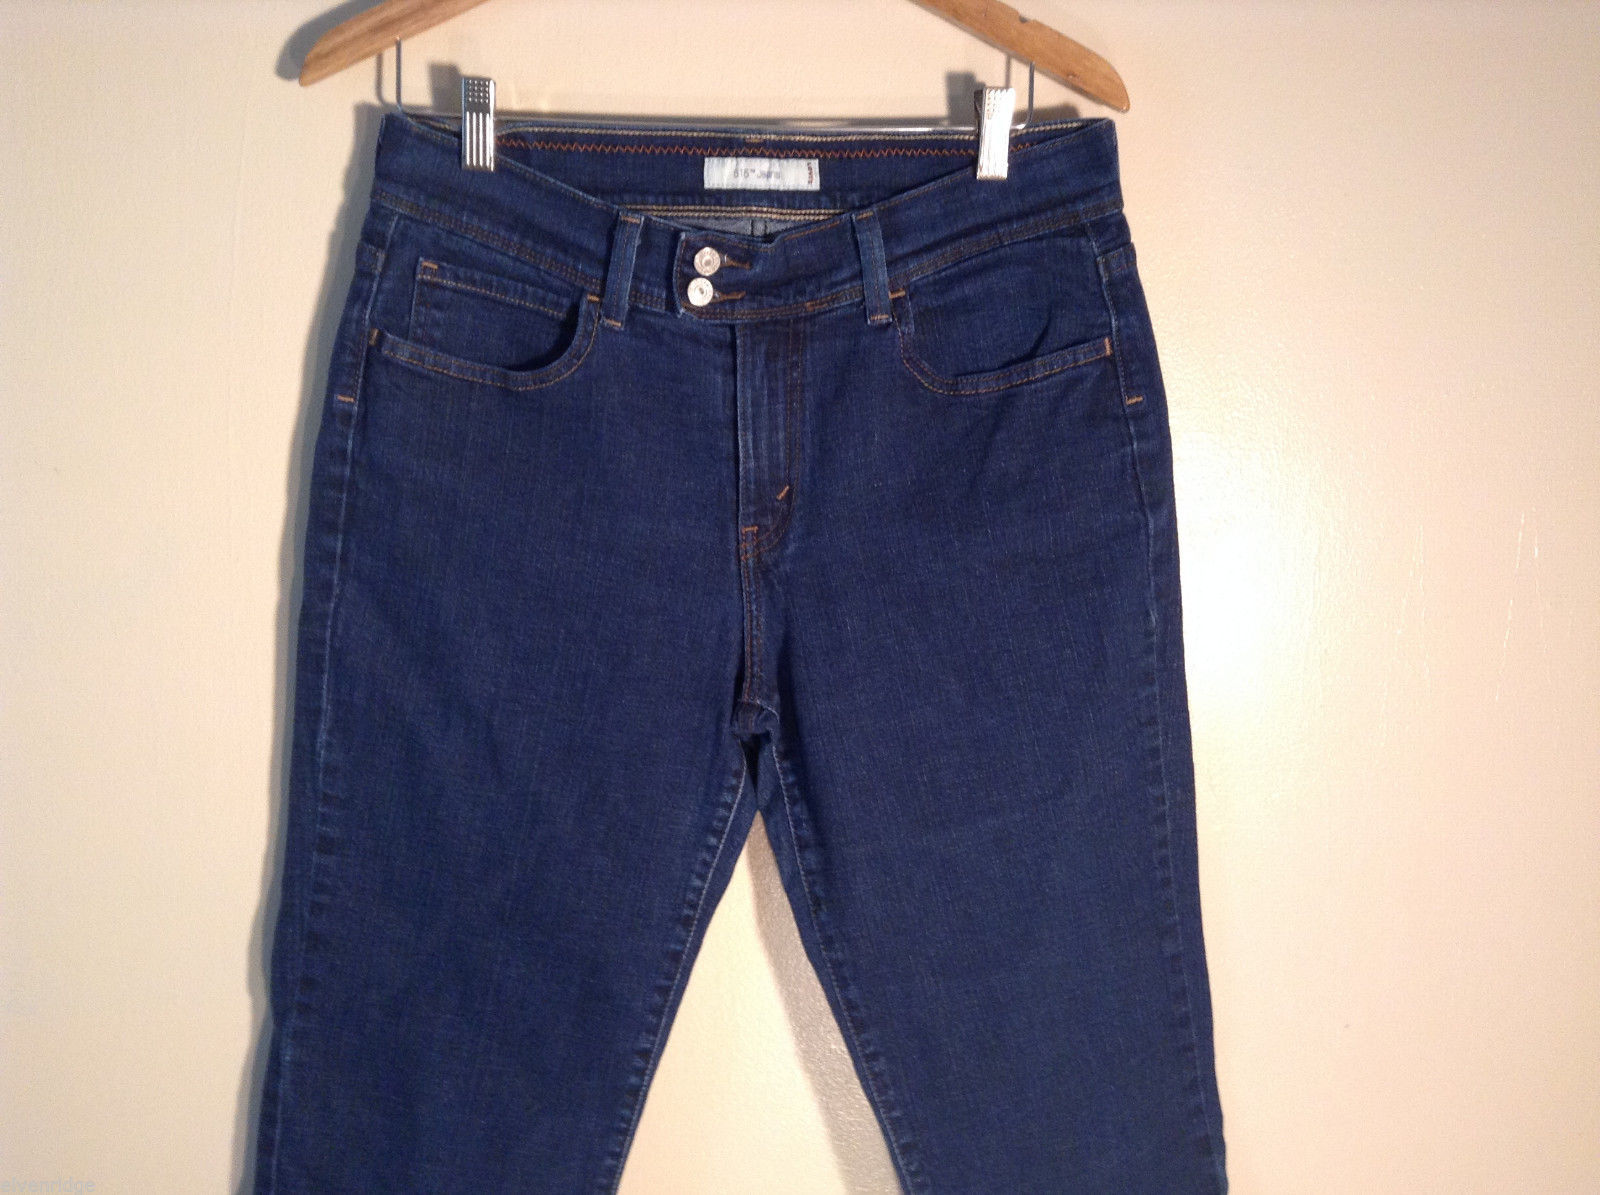 Womens Levis 515 Jeans Size 12 Short Jeans Excellent Blue